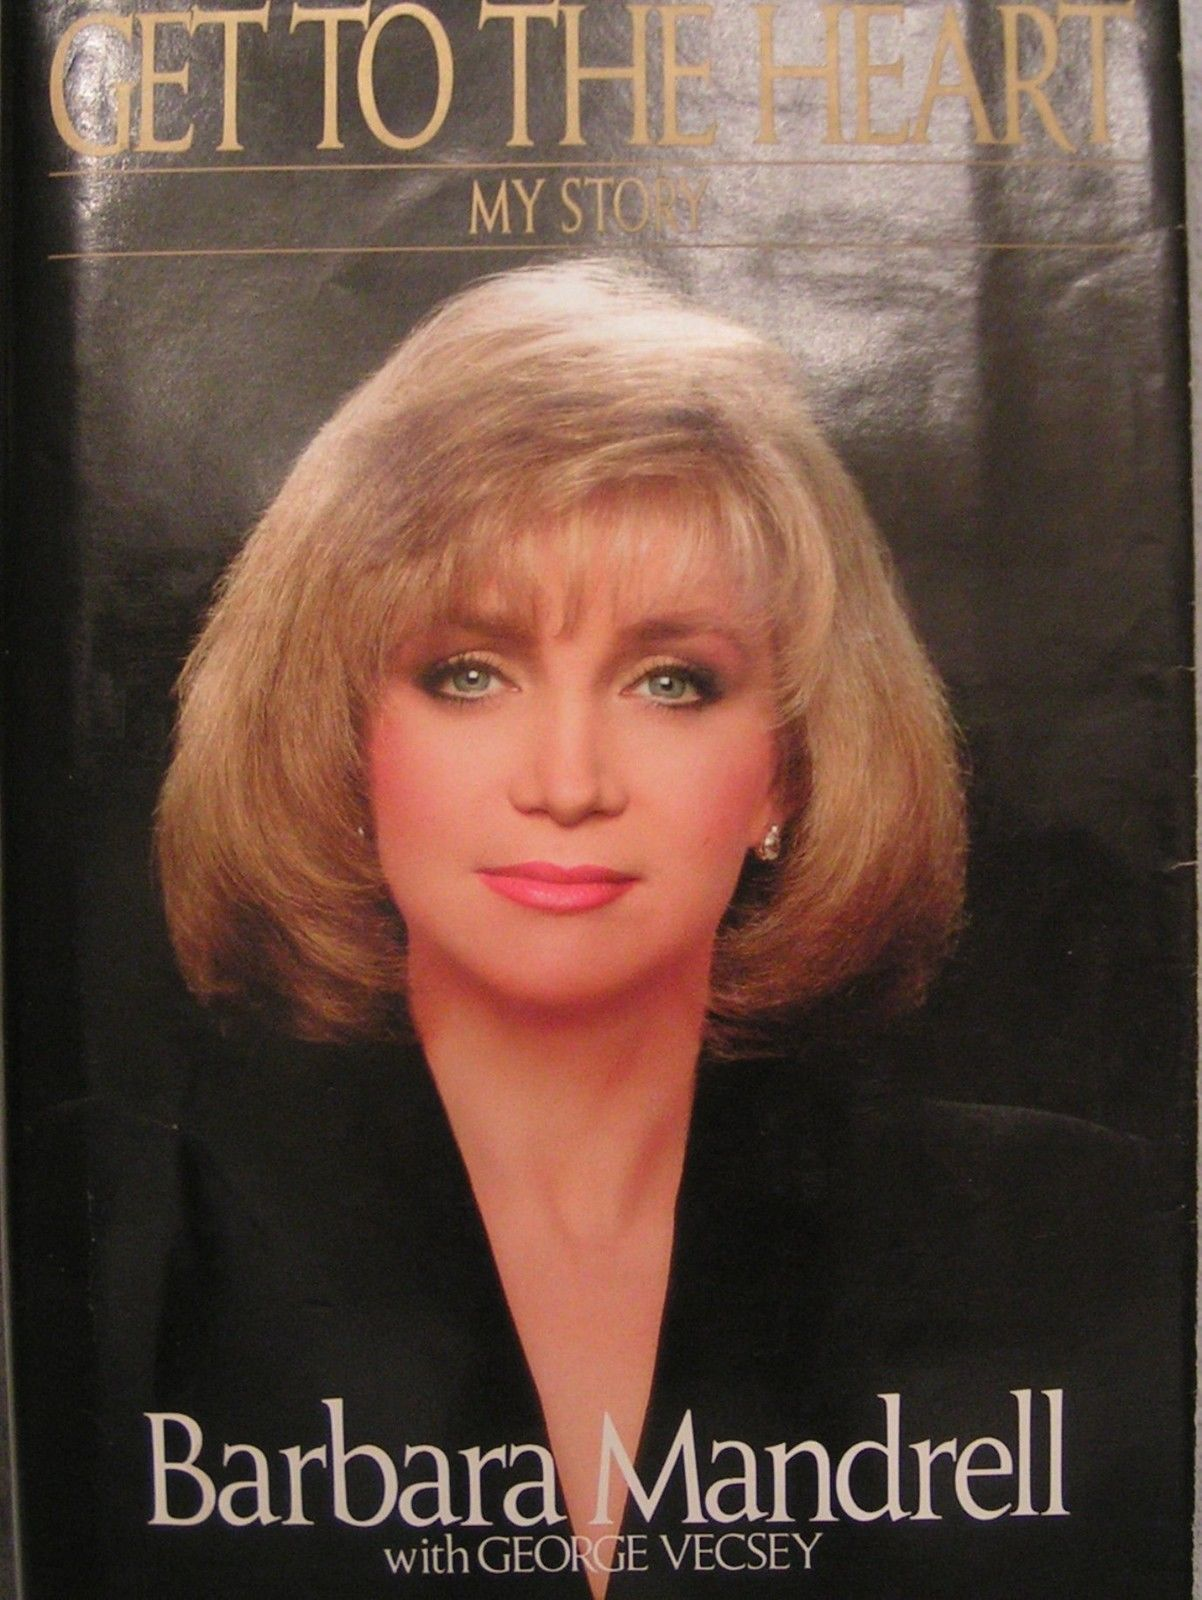 BARBARA MANDRELL - GET TO THE HEART - My Story